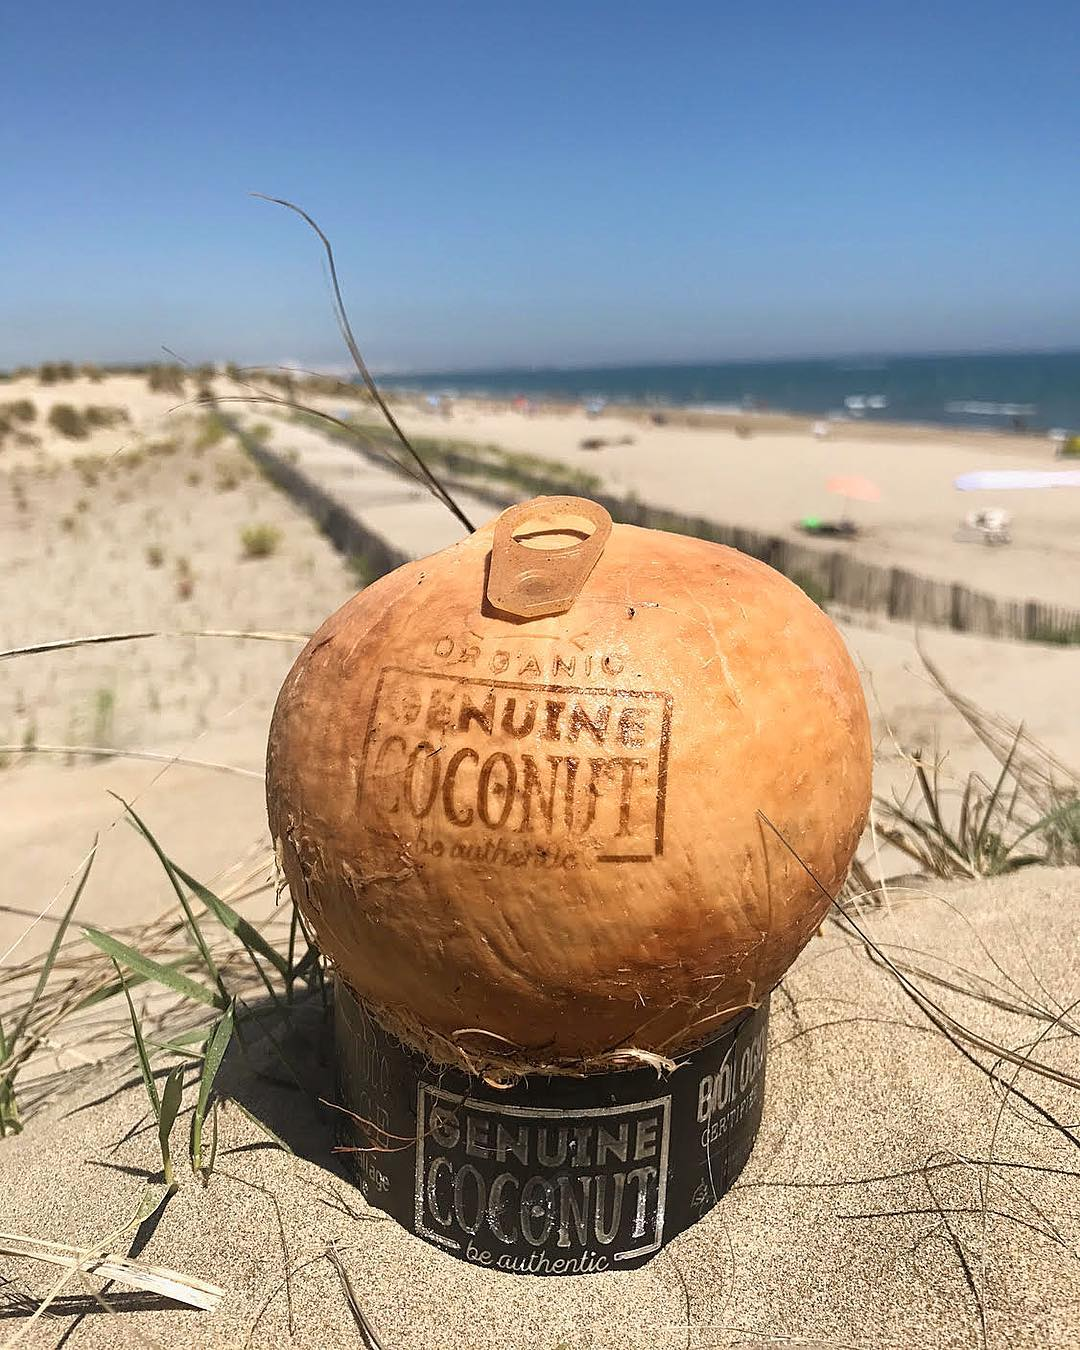 Petit rituel après le Sport : eau de coco ?Merci @genuinecoconutmontpellier pour le ravitaillement ? . . ➕ GENUINE COCONUT • coconut vierge eau et fruit . ??‍? Article sur le blog {lien dans ma bio} . _________________  #genuine #genuinecoconut #coconut #genuinecoconutmtp #coconutwater #foodlover #blogfood #foodporn #food #foodphotography #gastronomy #pintadesport #healthy #healthyfood #healthylife #pintademontpellier #blogsport #workout #fitness #running